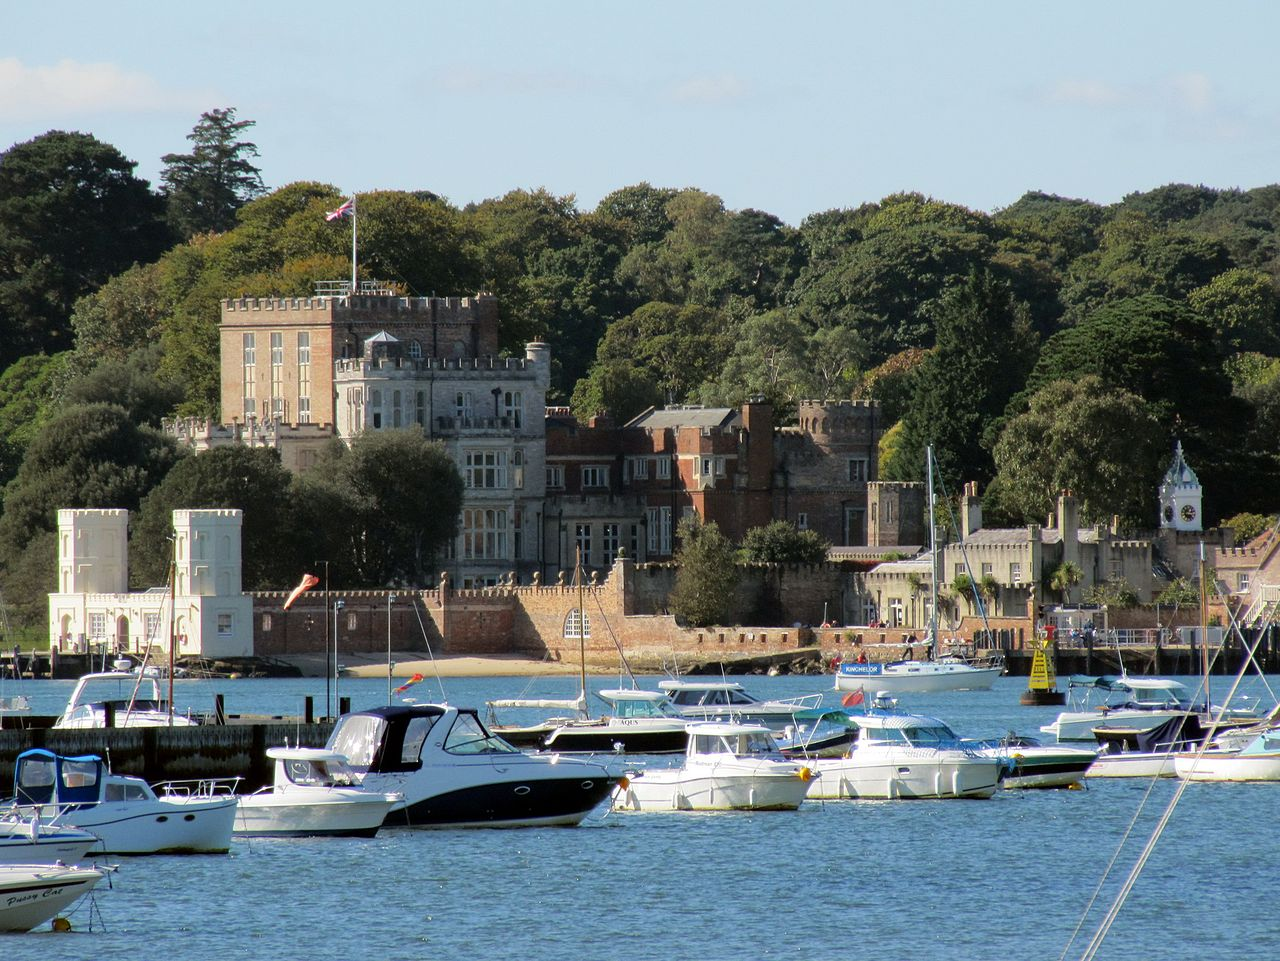 brownsea_island_poole_-_panoramio_3